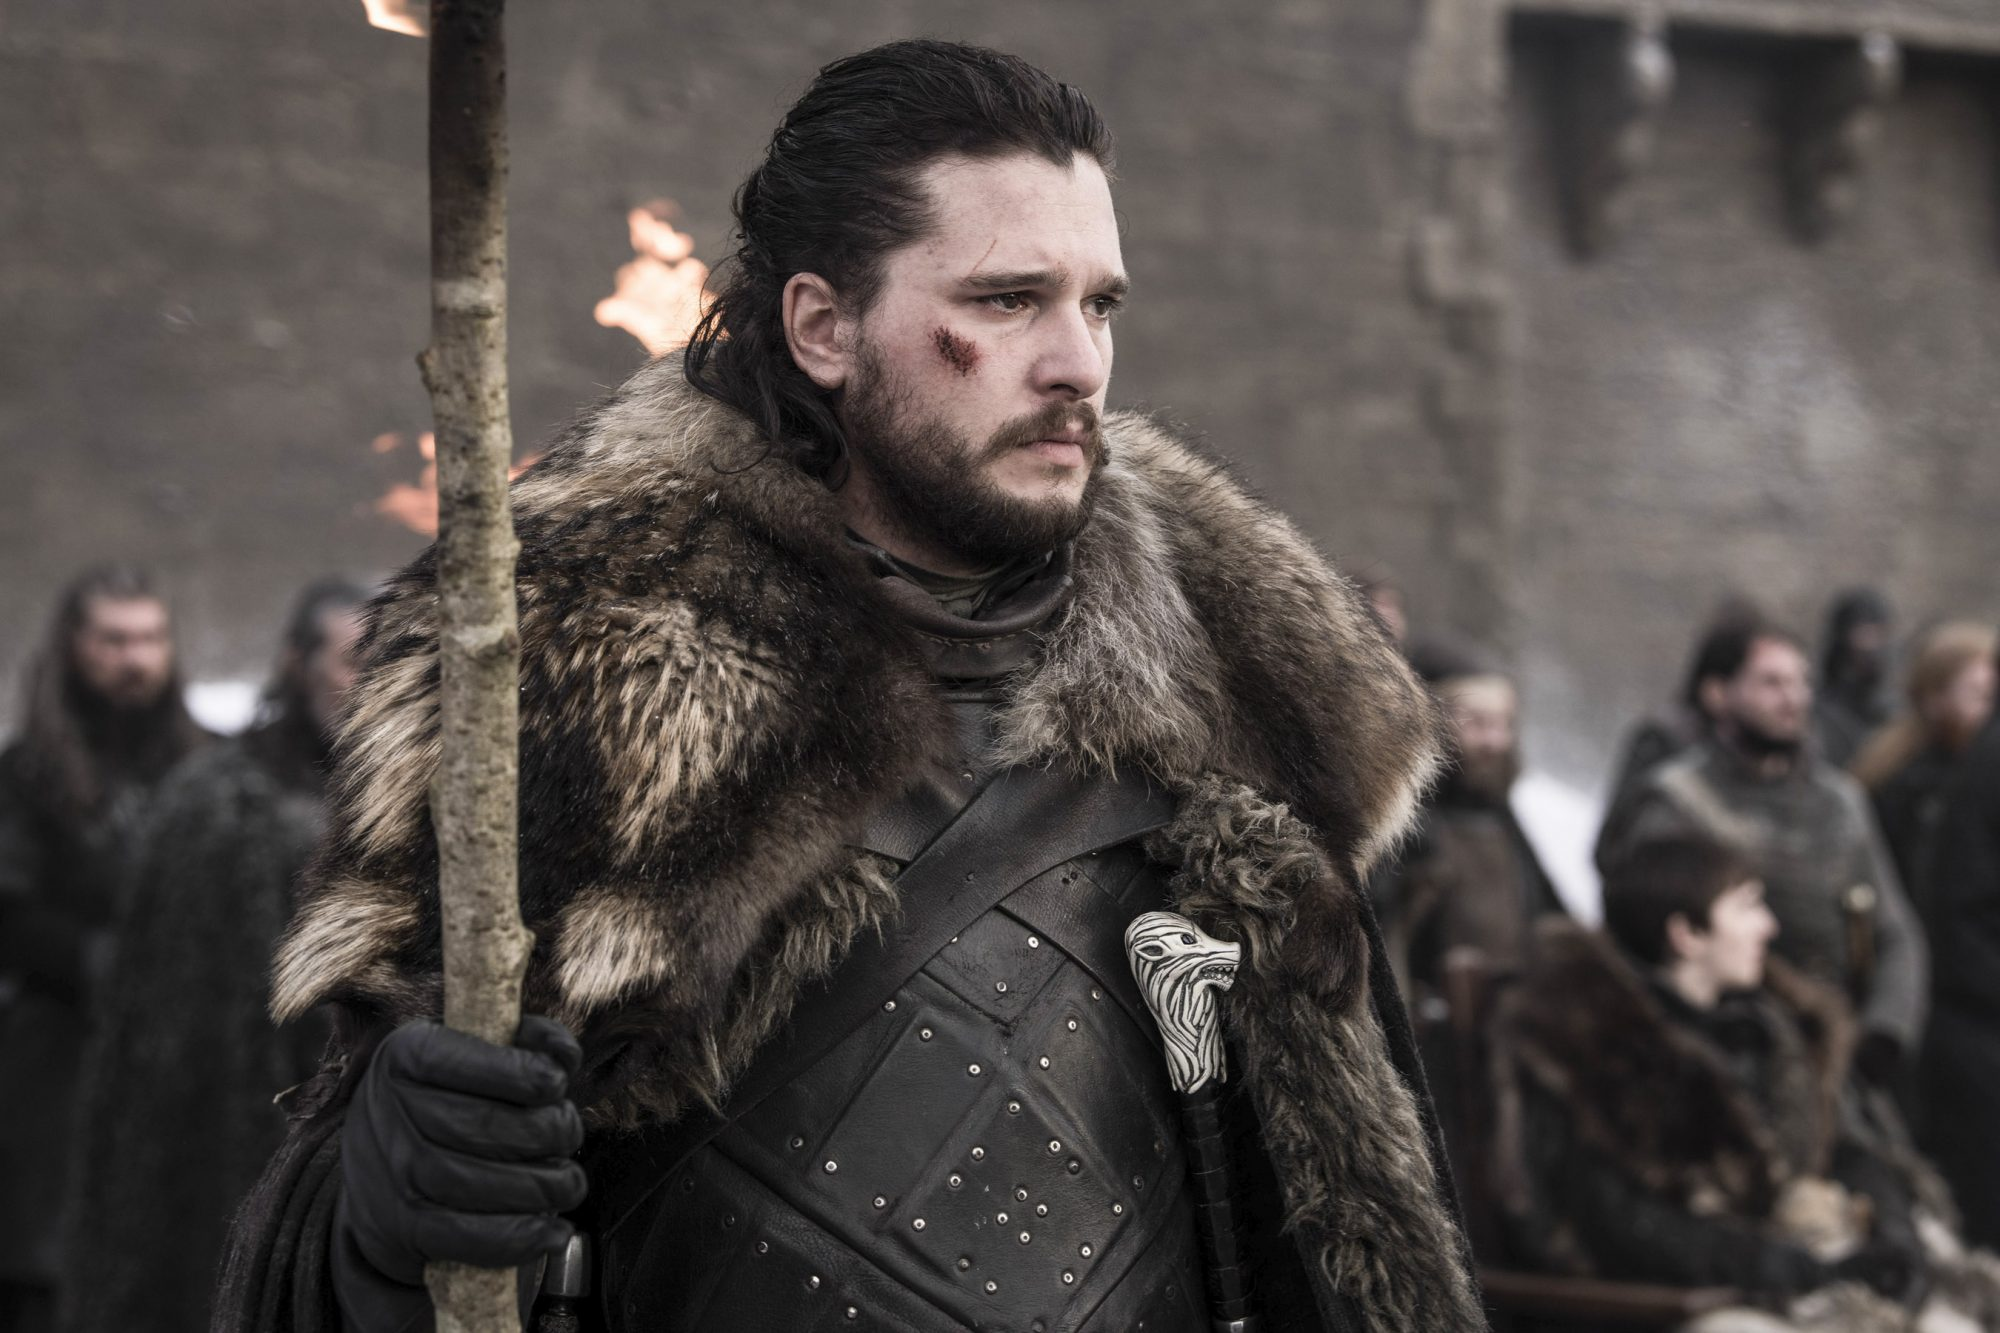 Game of Thrones Season 8, Episode 4 Kit Harington as Jon Snow - Photo: Helen Sloan/HBO